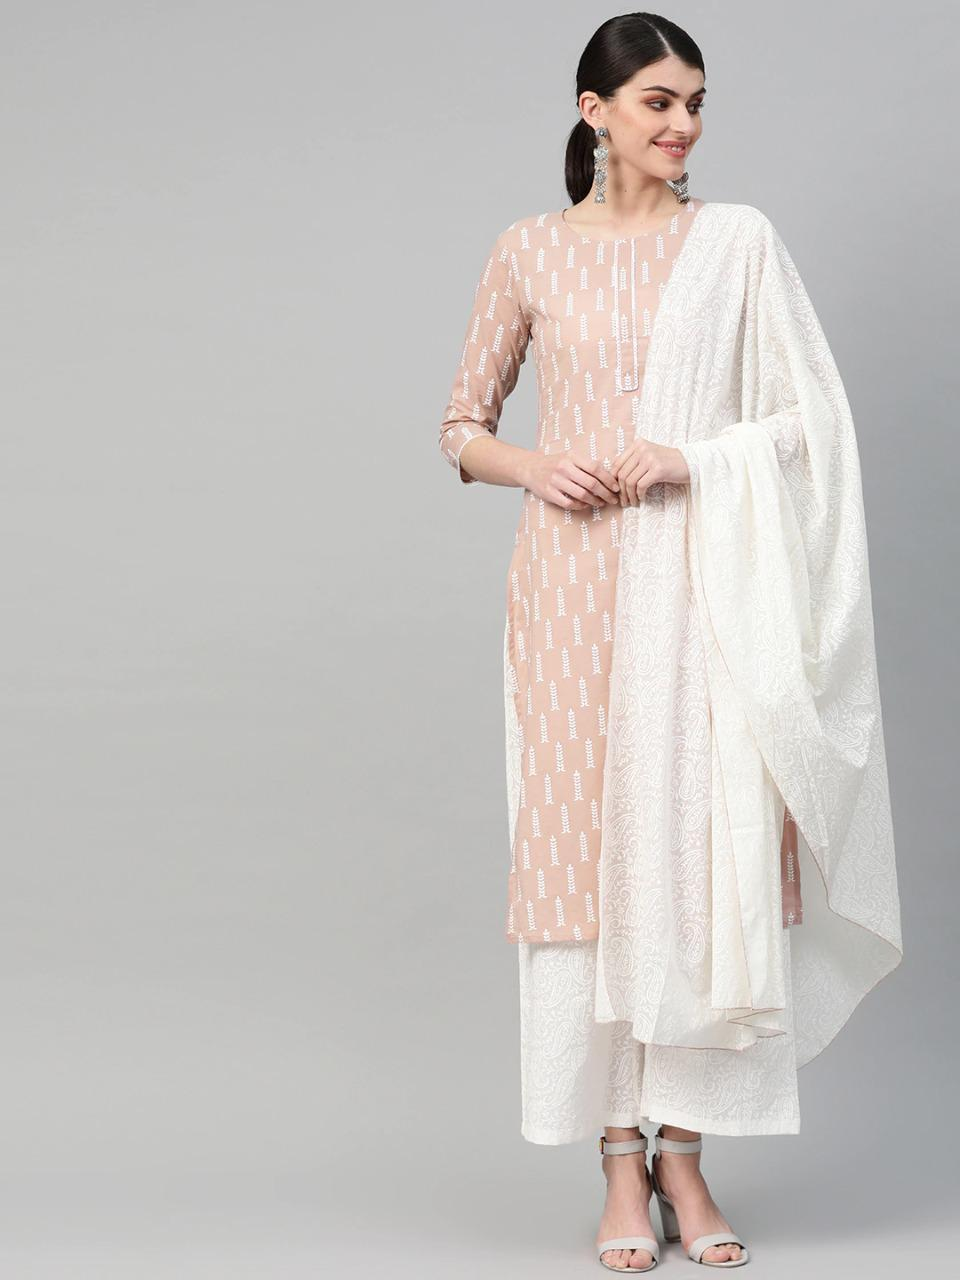 Light Misty Rose Printed Cotton Jaipuri Kurta Palazzo Dupatta Set With Price